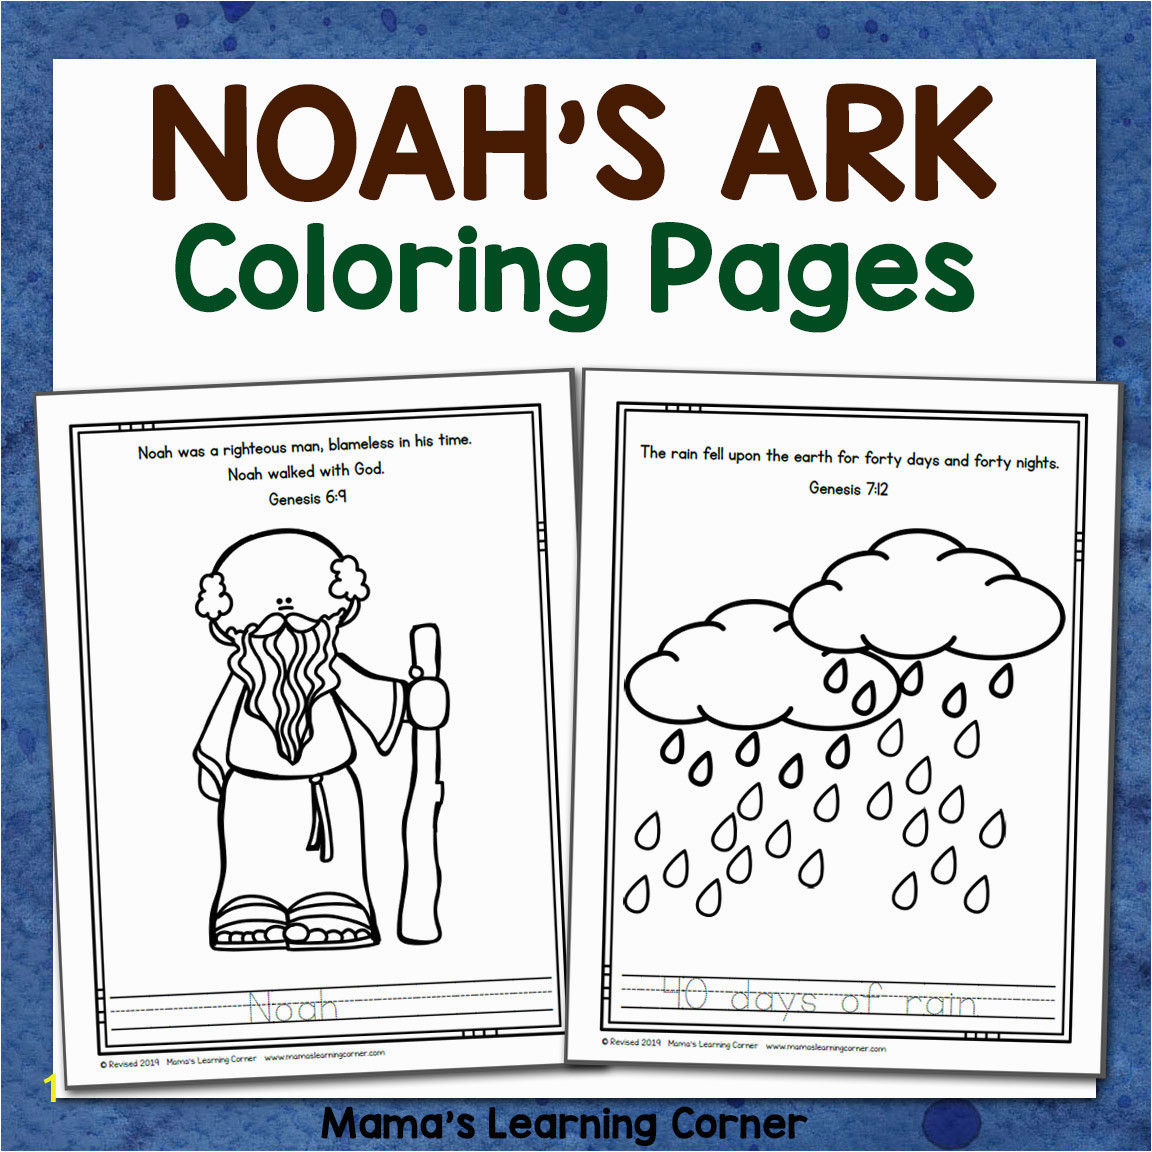 Noahs Ark Coloring Pages 8x8